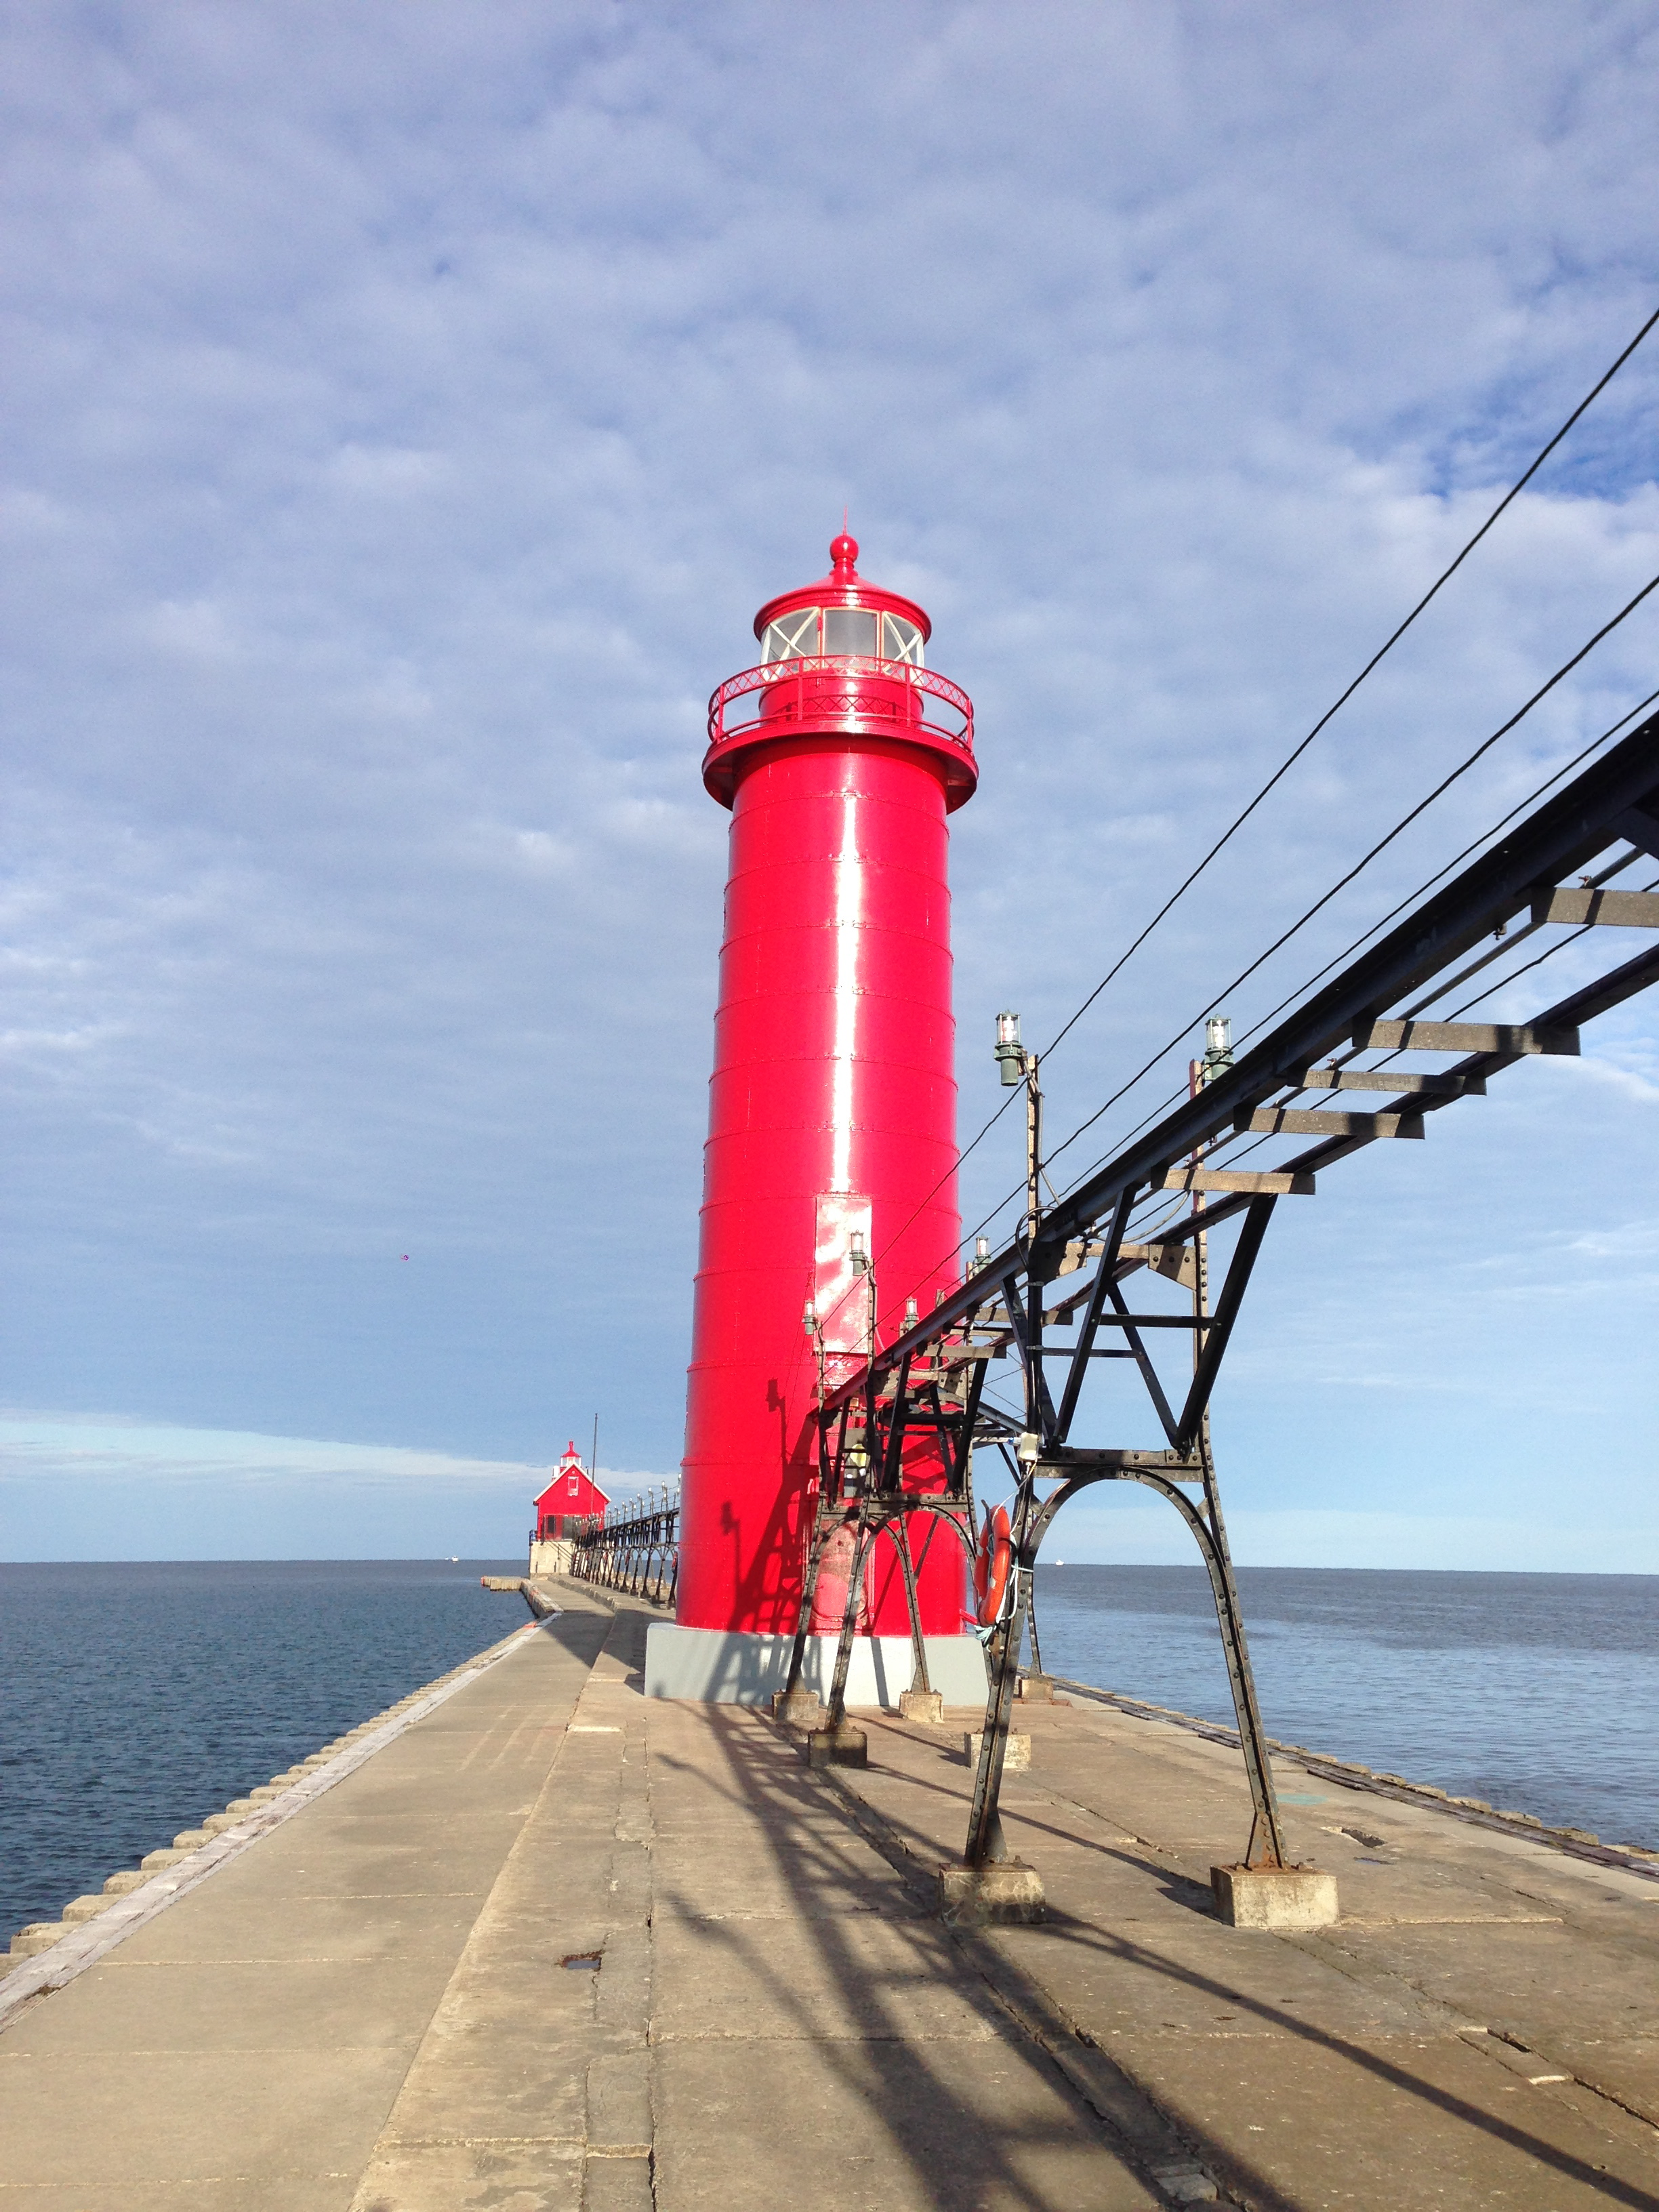 Checked out the lighthouse while on a run.